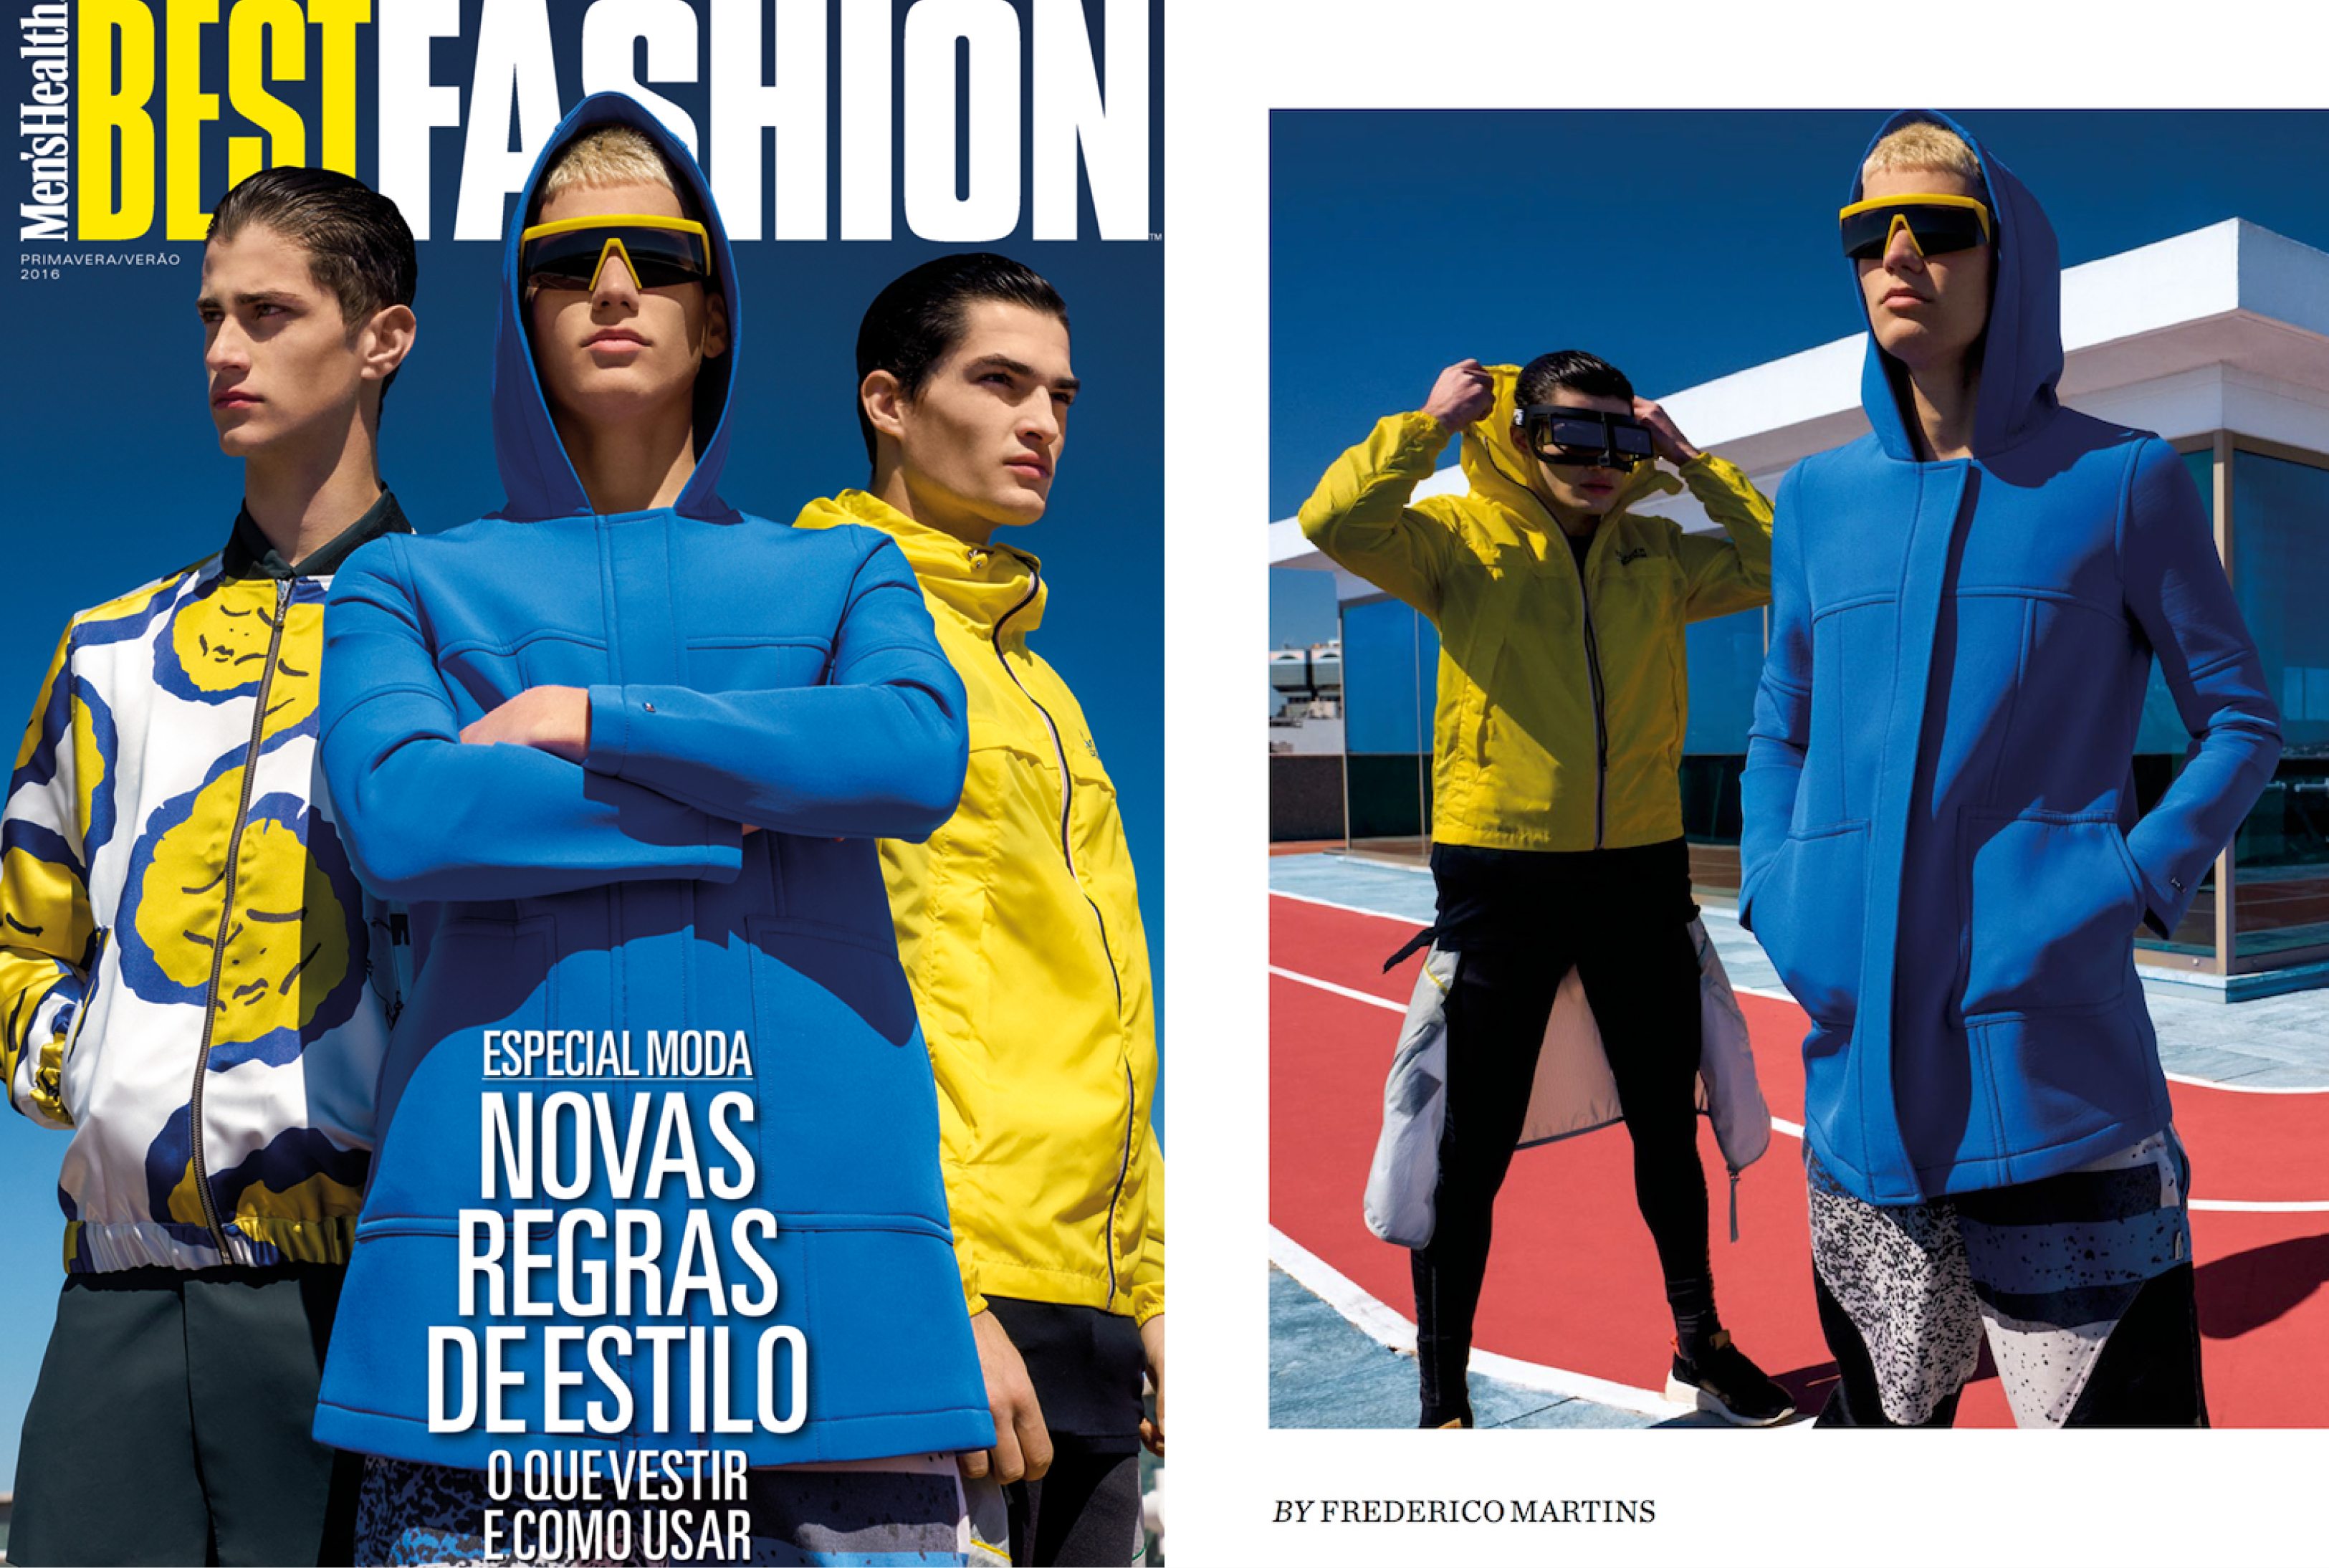 MYKITA & BERNHARD WILLHELM Sonnenbrille VICE erschienen in Men's Health Best Fashion Portugal